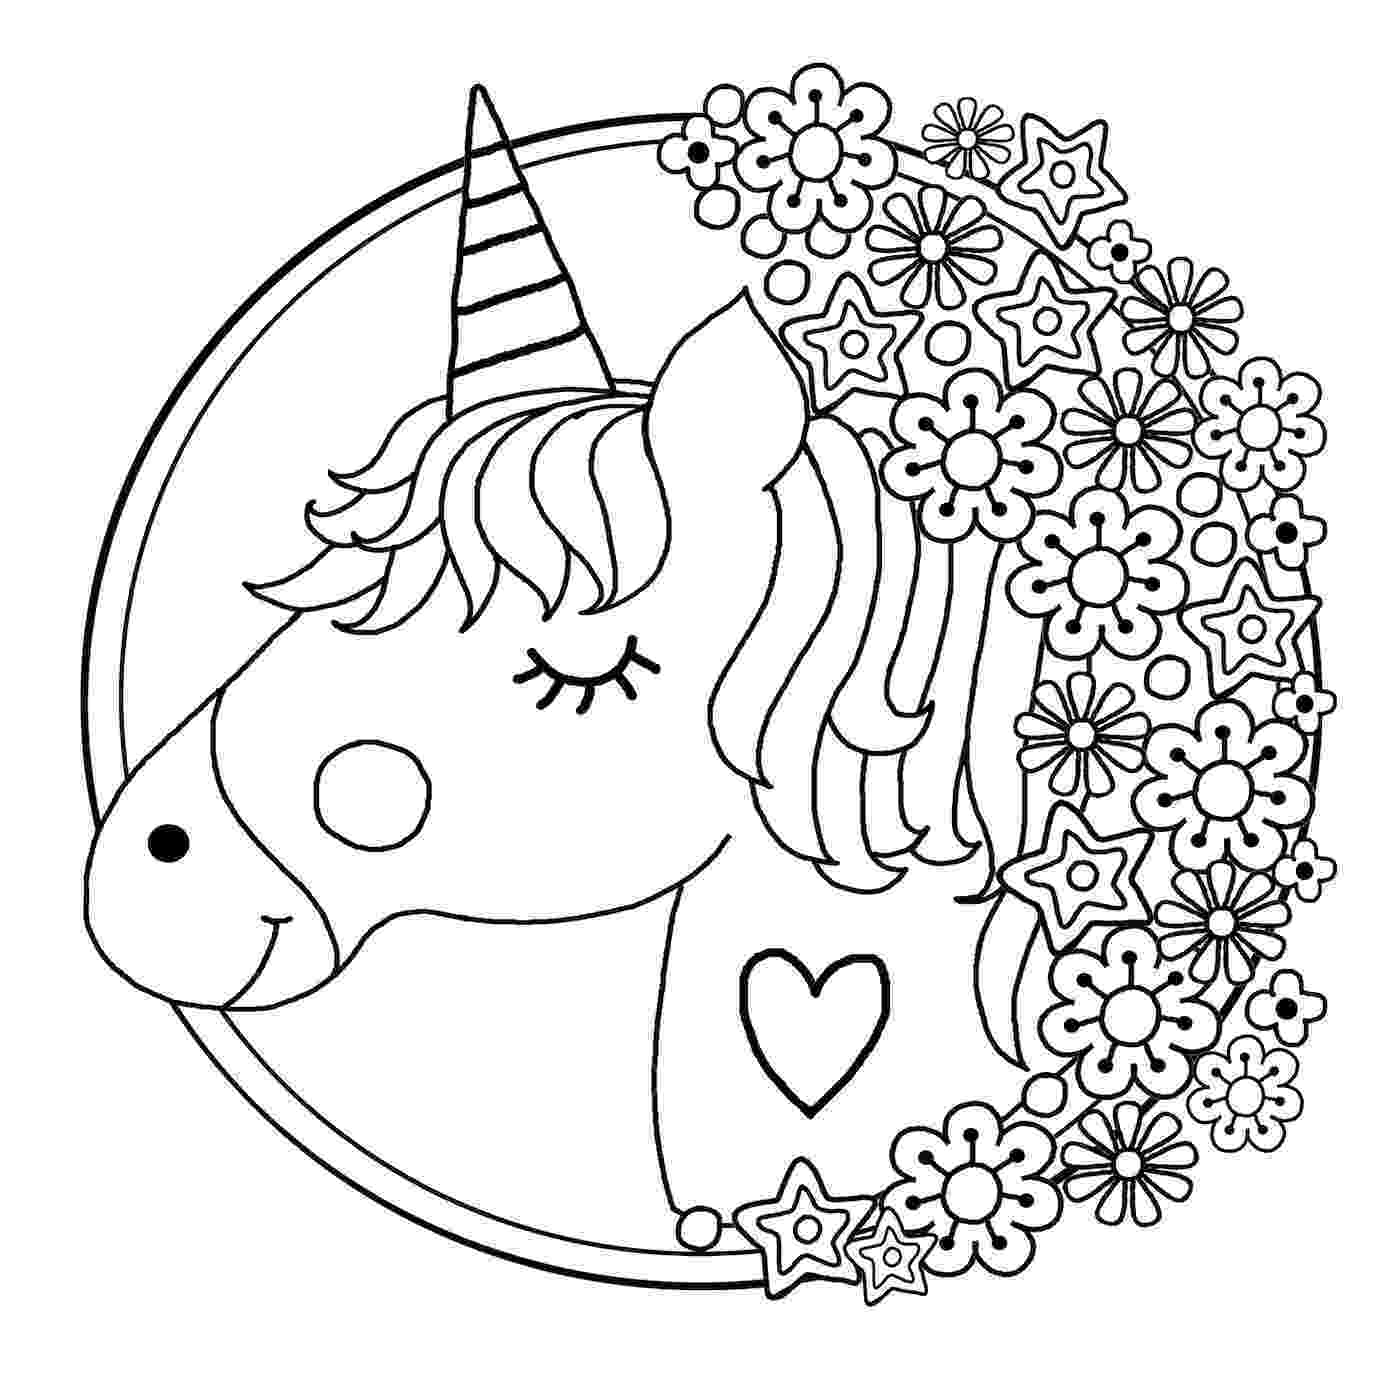 unicorn colouring coloring pages unicorn coloring pages free and printable unicorn colouring 1 1